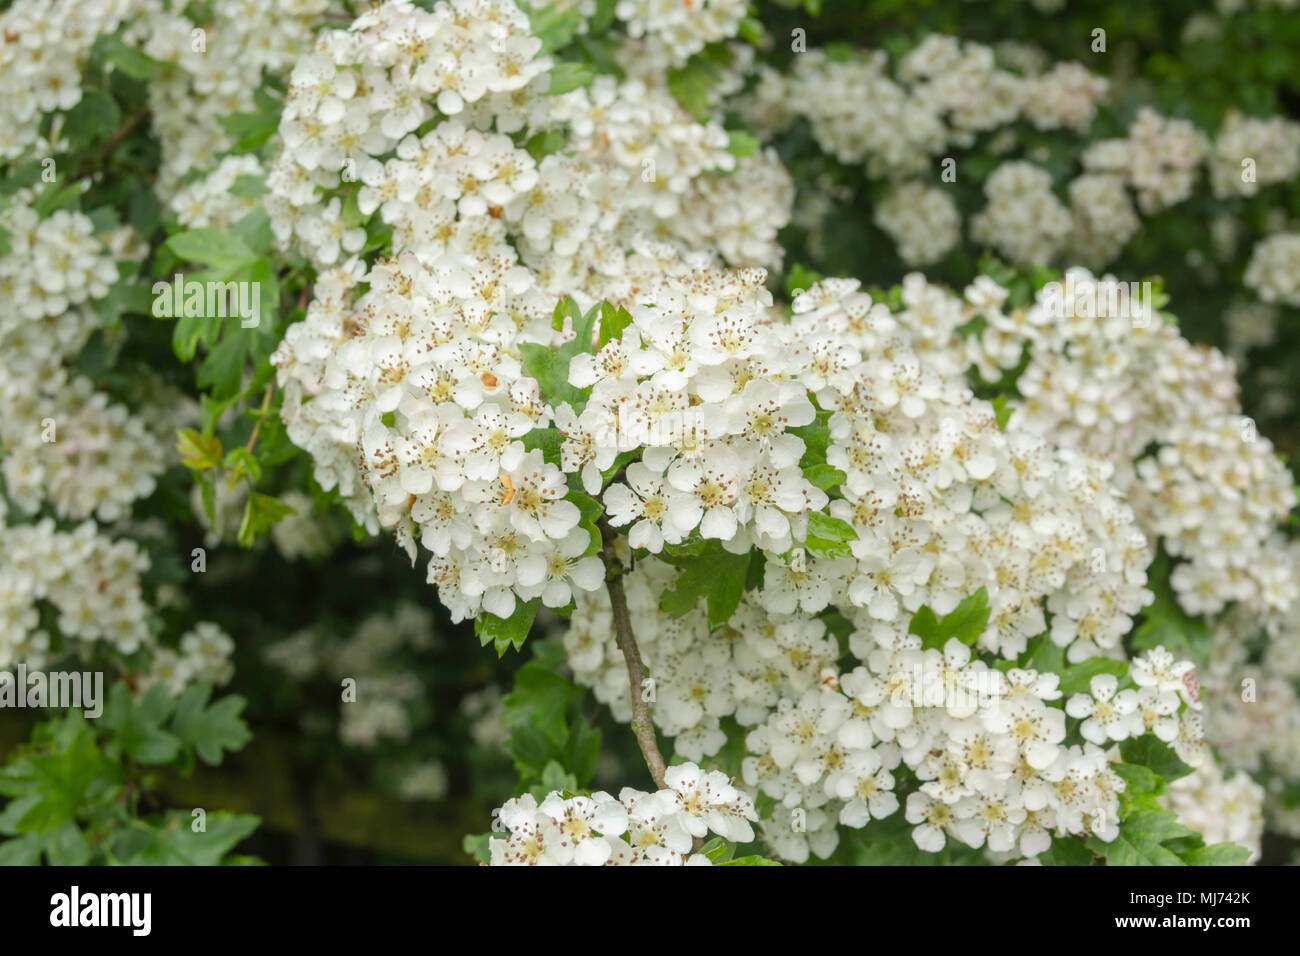 Blossom on a hawthorn tree (crataegus monogyna), also known as as a May-Tree or Mayblossom becuase of the month in which it usually flowers. - Stock Image